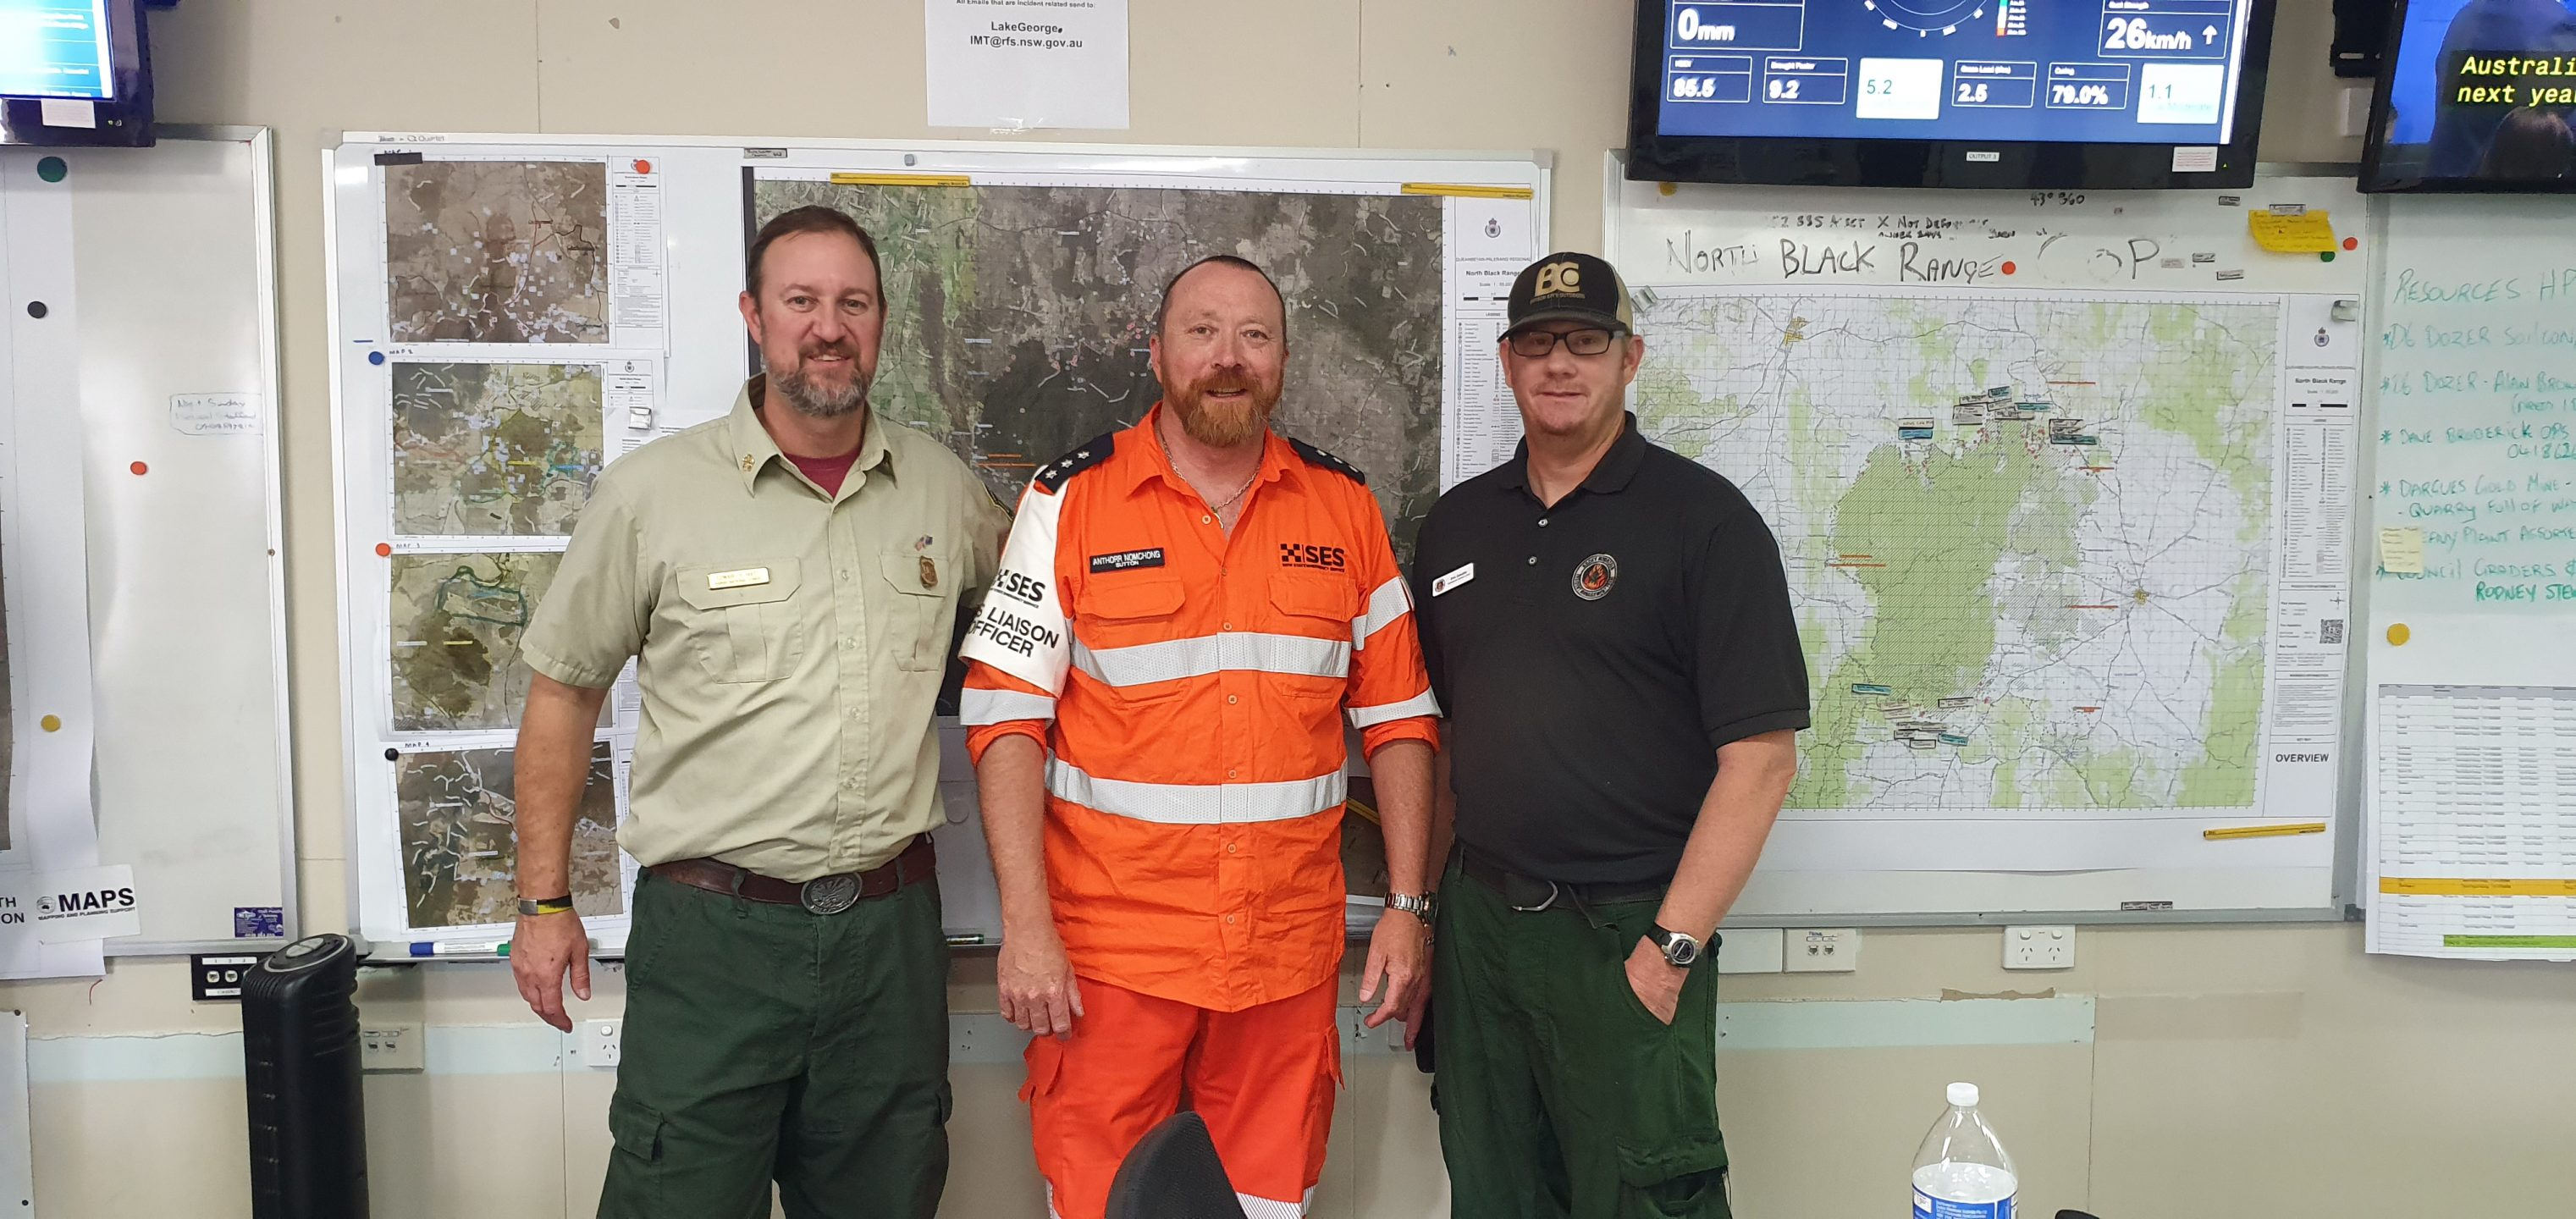 Anthor SES liaision officer standing with two USA assistance officers in a RFS office